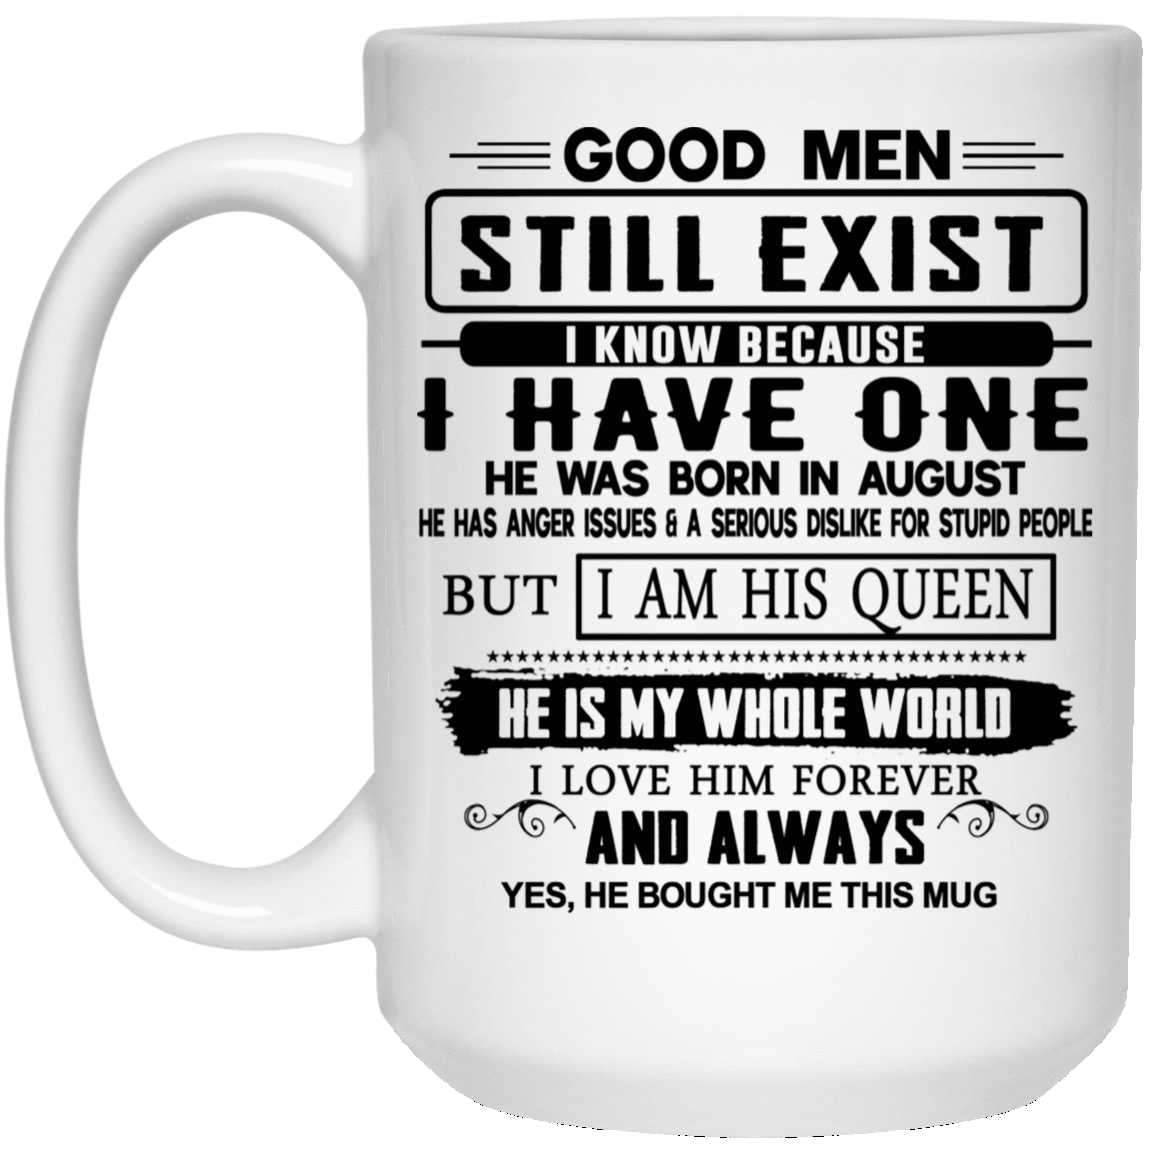 Good Men Still Exist I Have One He Was Born In August Mug 1032-9816-76399503-47456 - Tee Ript